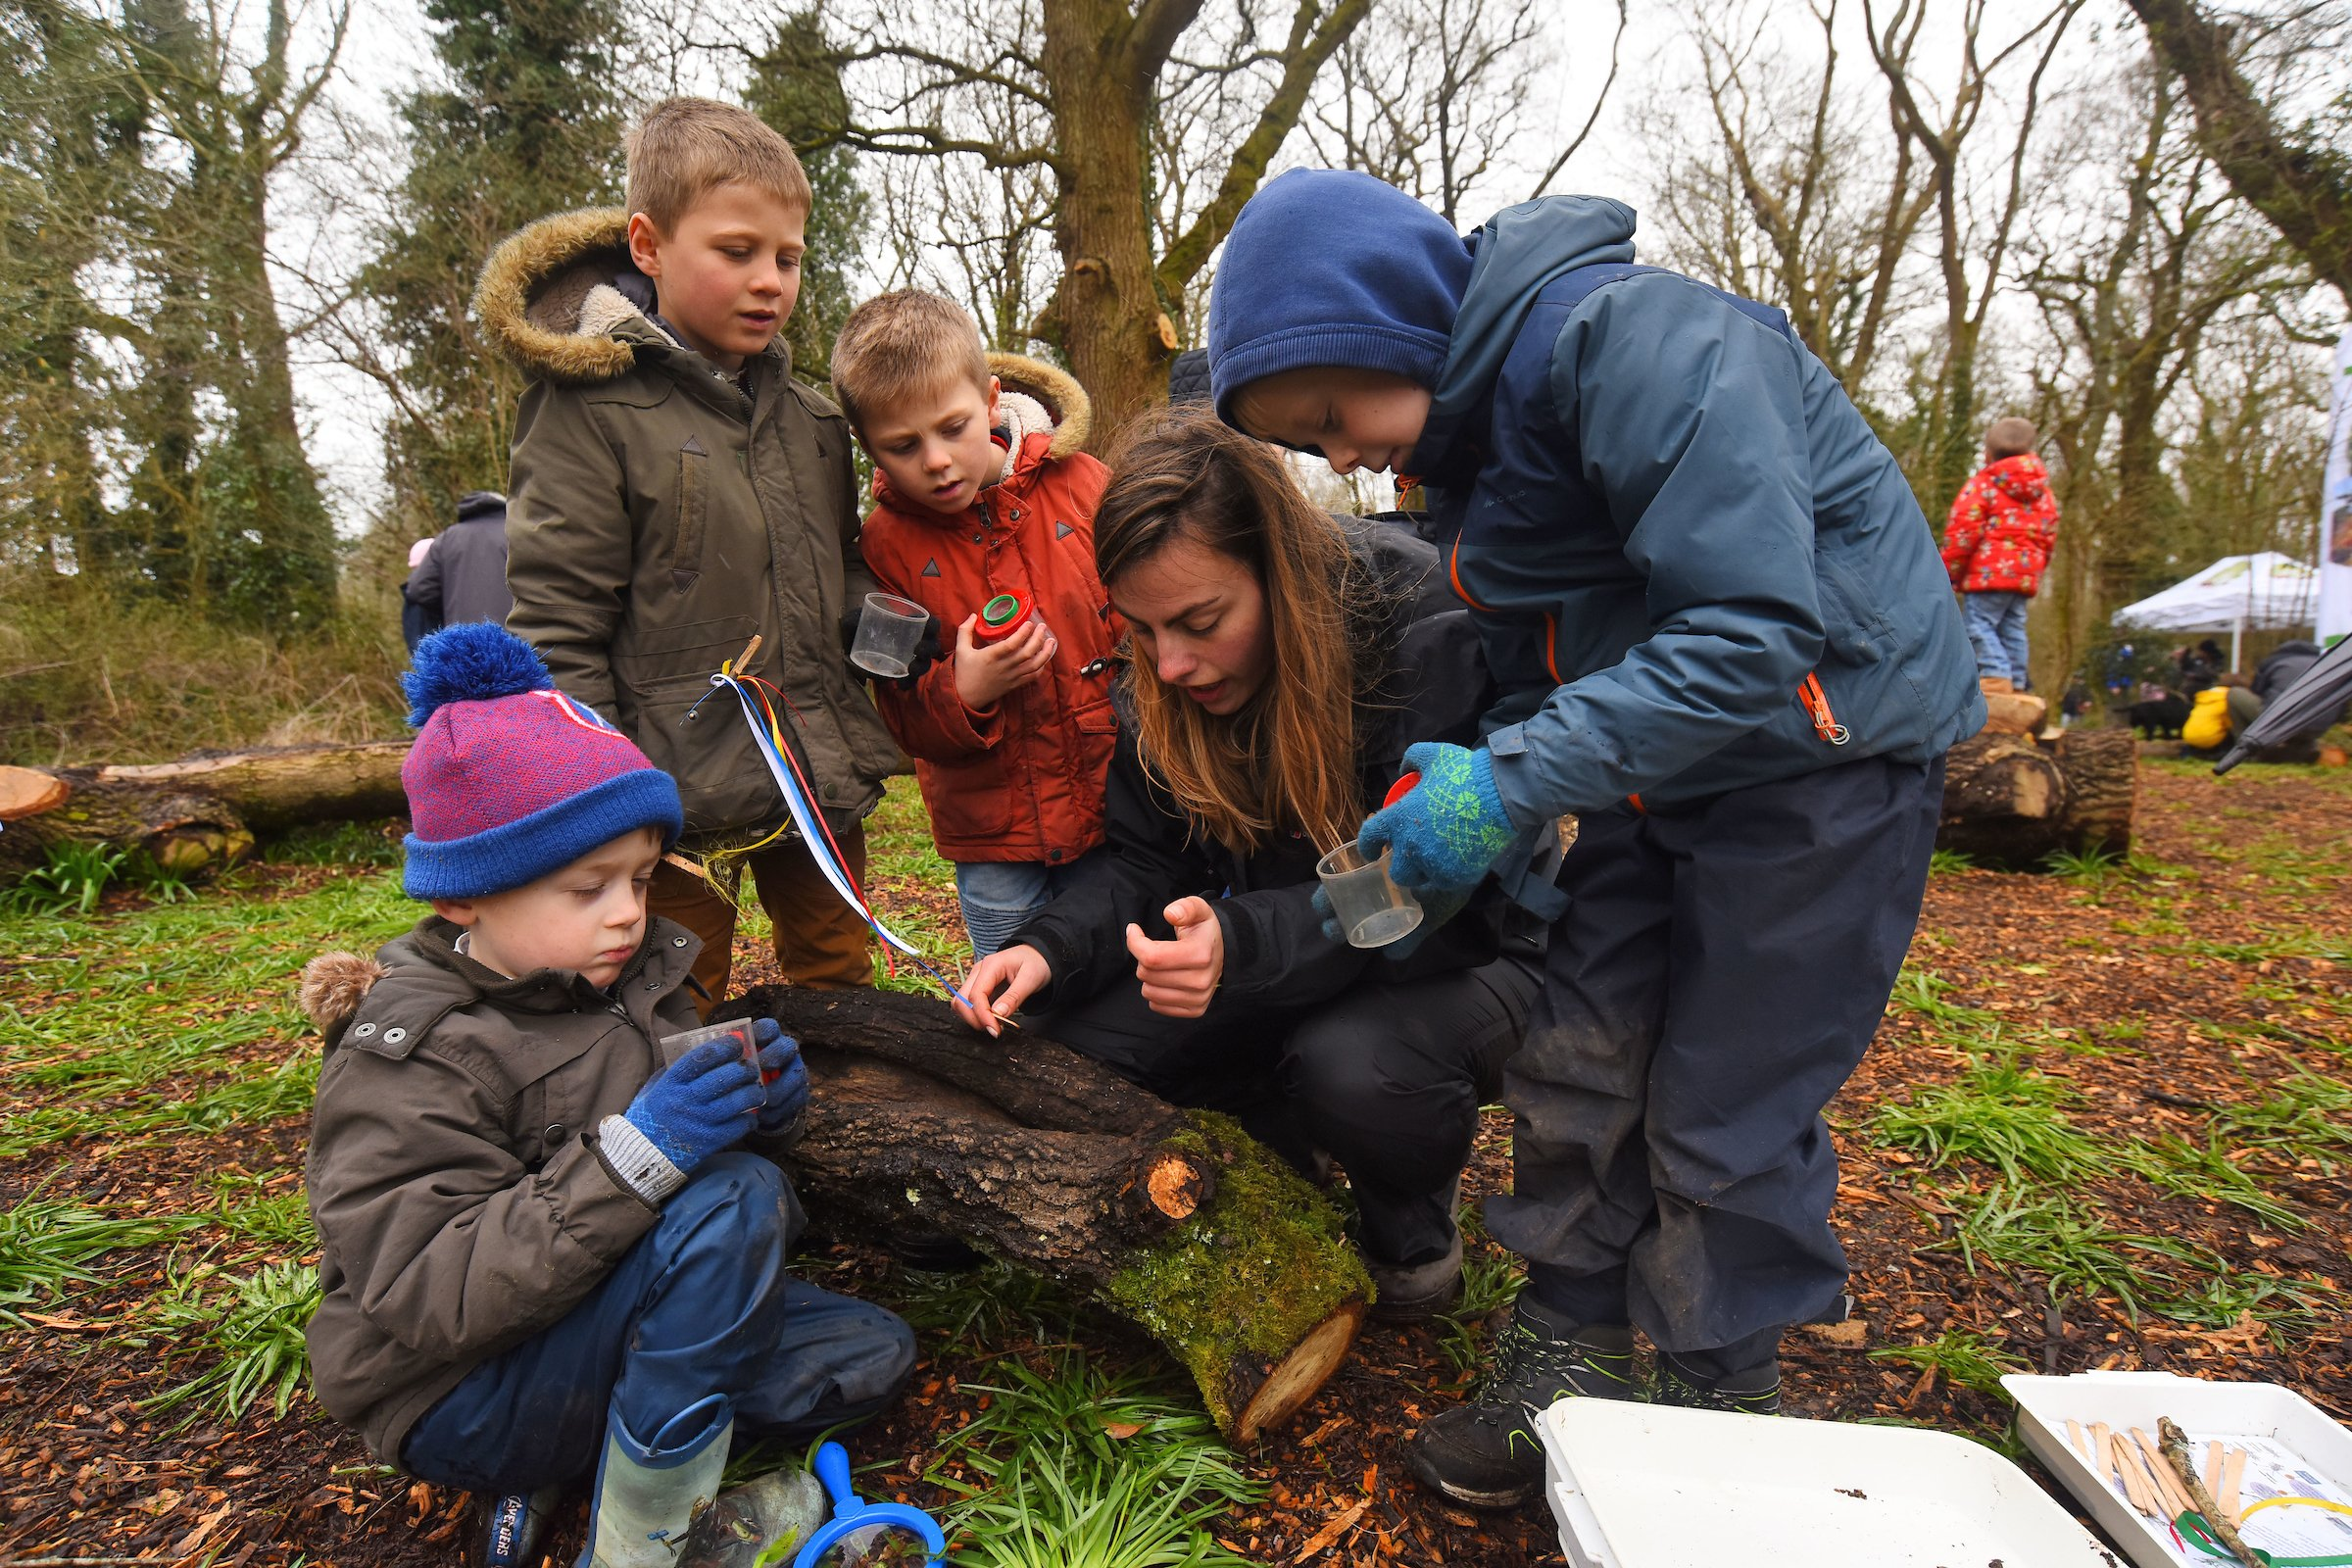 Bug hunting at the Holbury Manor wild play site opening April 2018